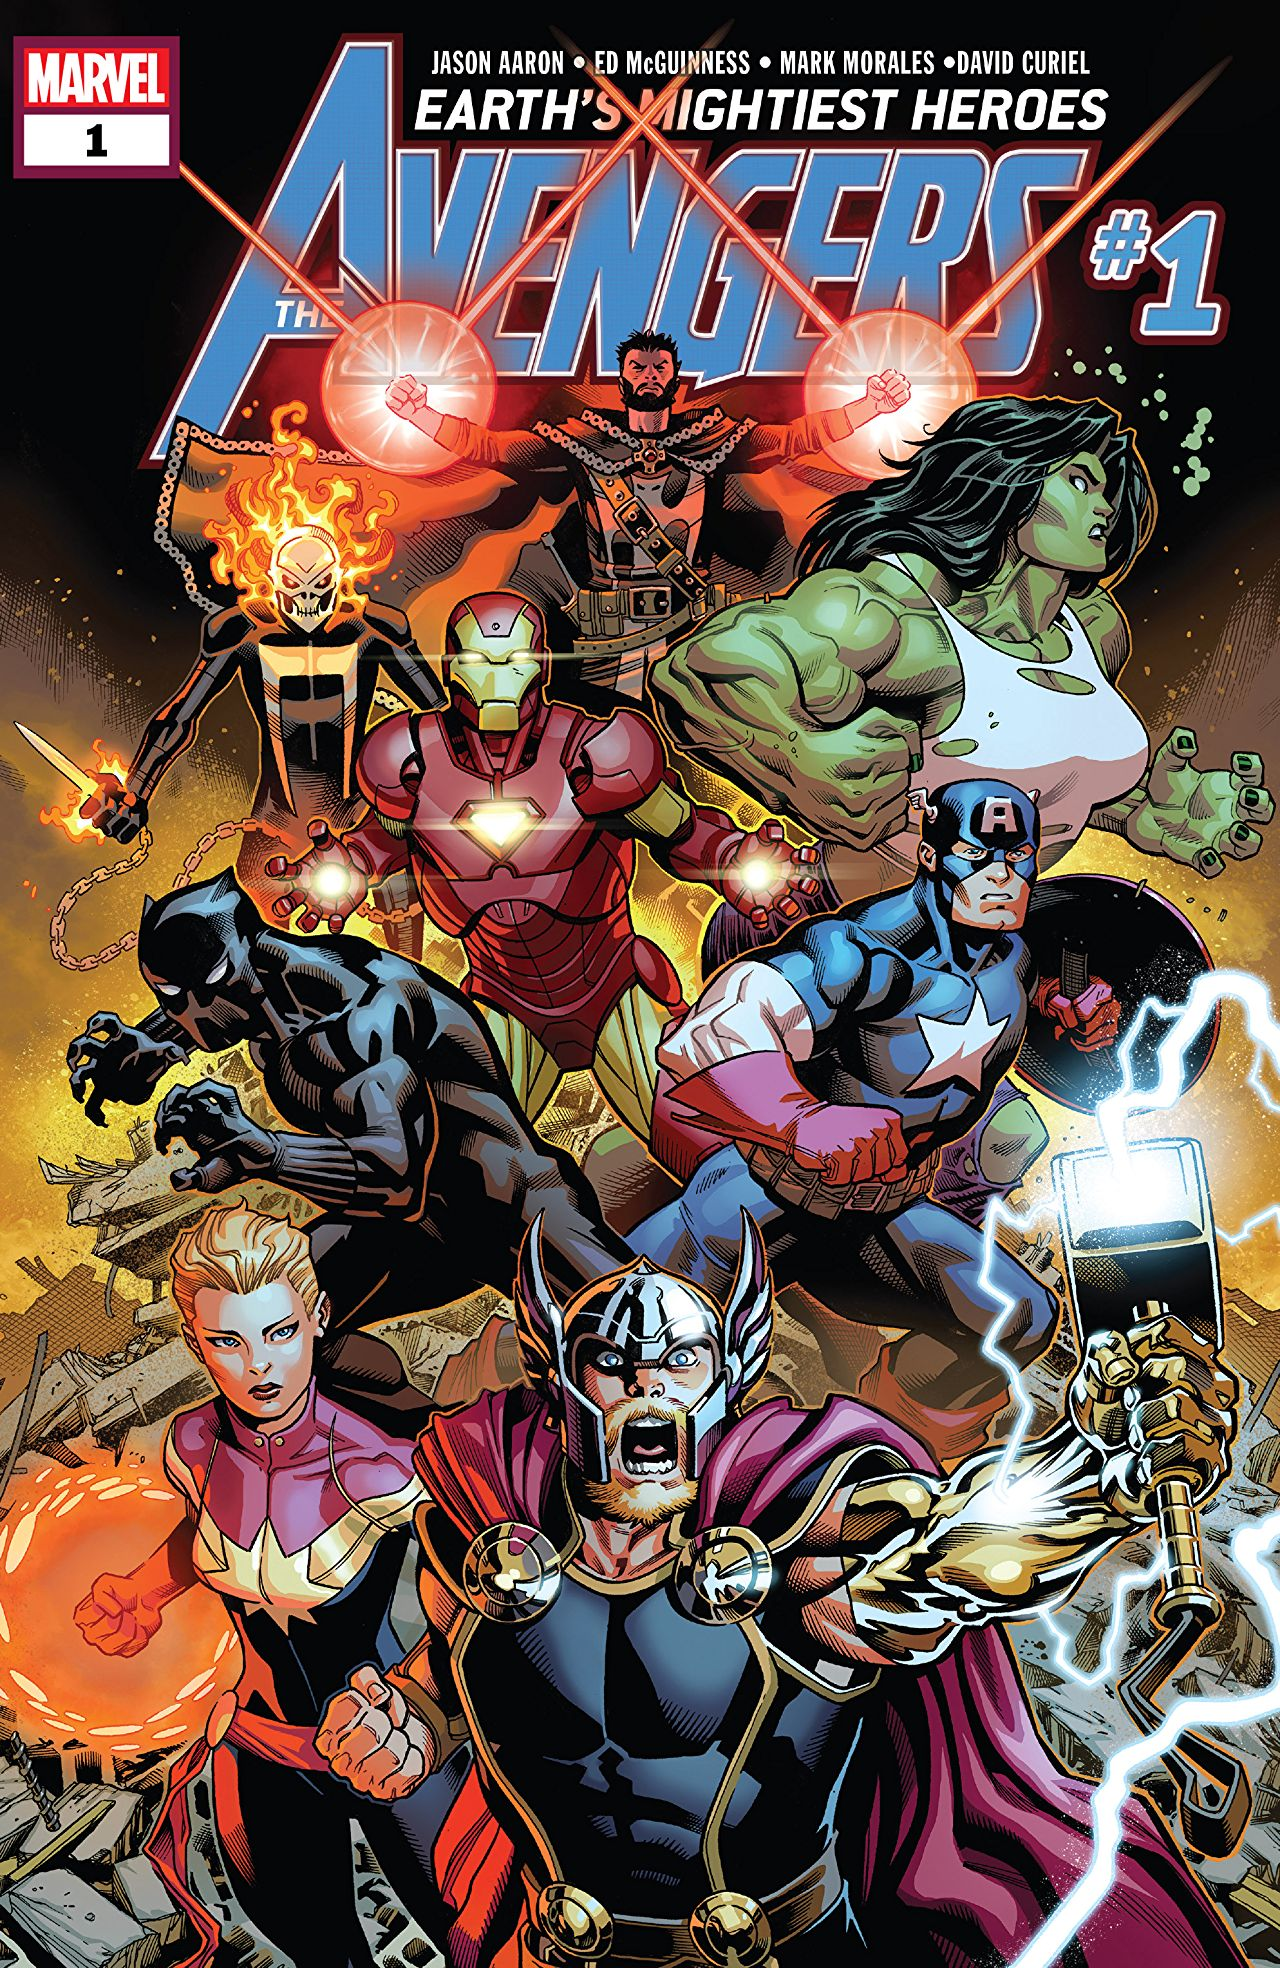 AGE OF ULTRON GRAPHIC NOVEL Paperback Collects 10 Part Series and Avengers #12.1